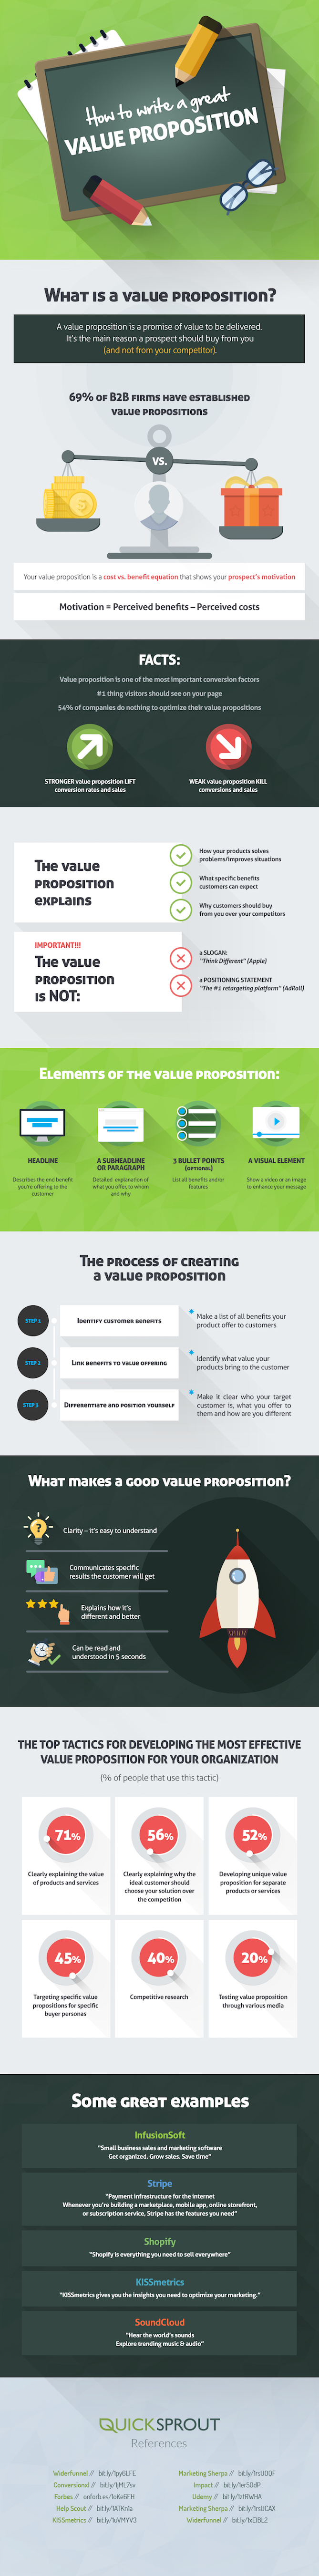 QuickSprout infographic with value proposition definition and how to write a value proposition